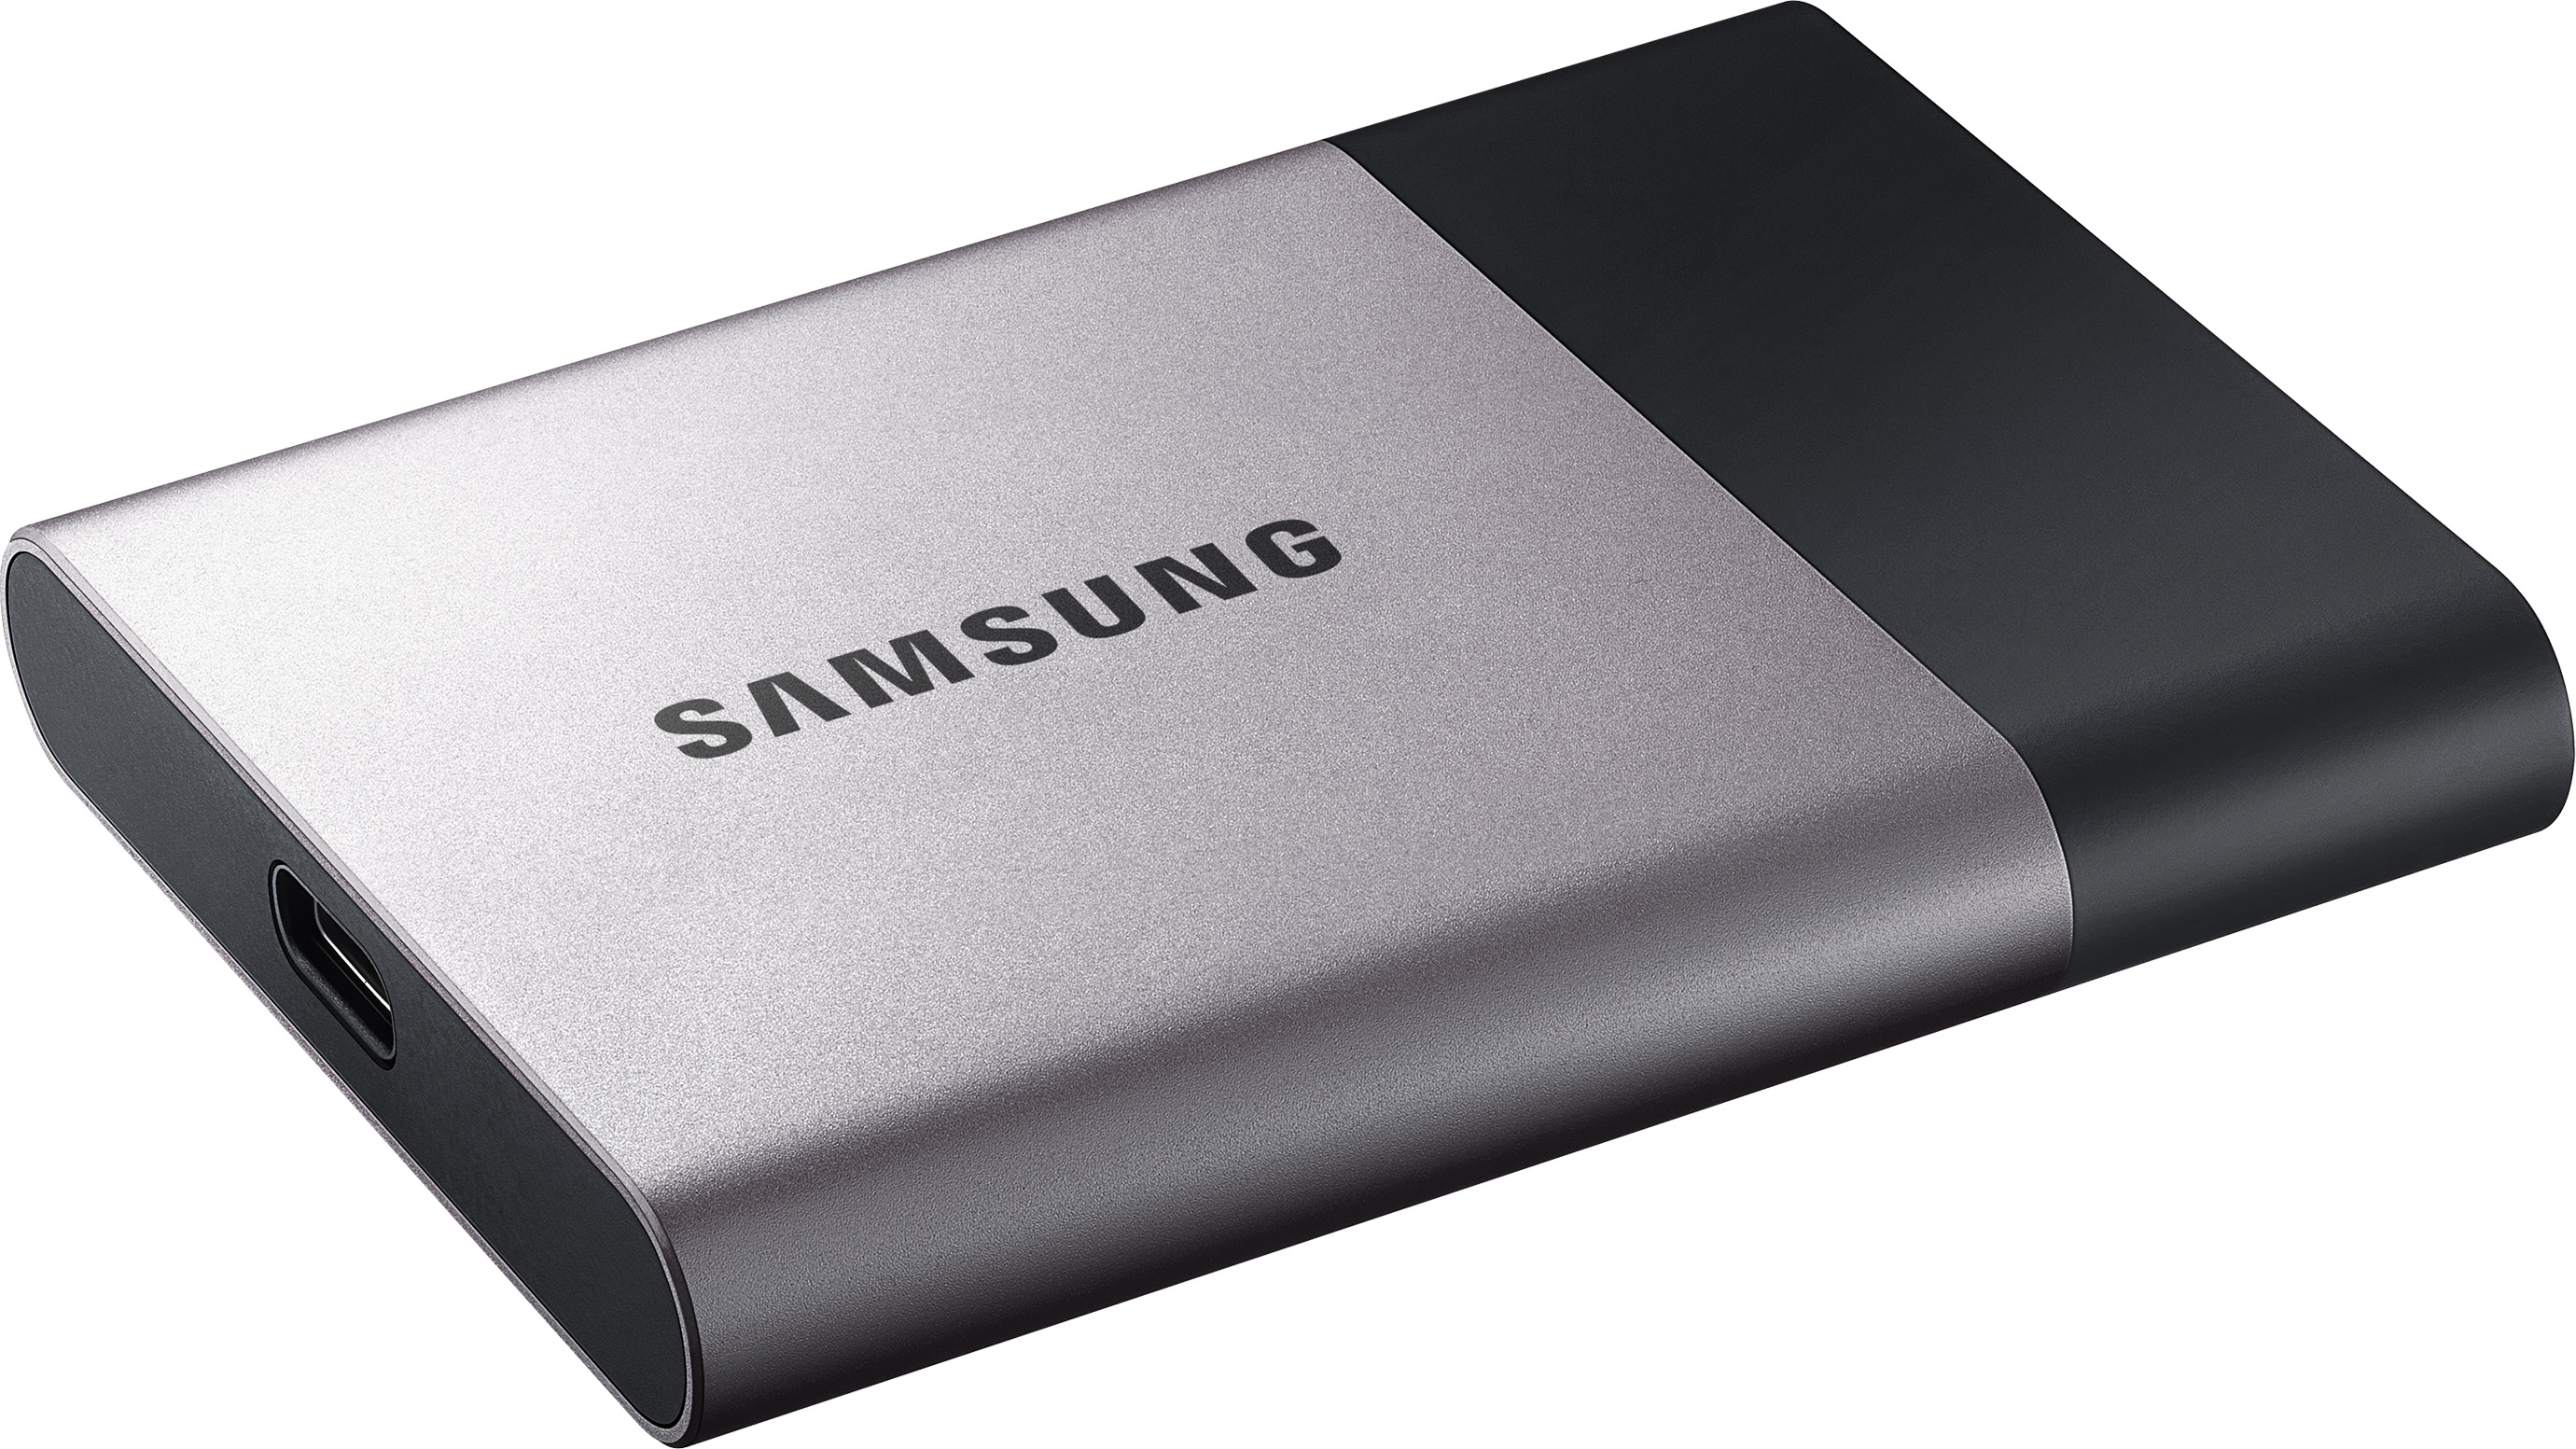 samsung portable ssd t3 250gb external solid state drive - Portable